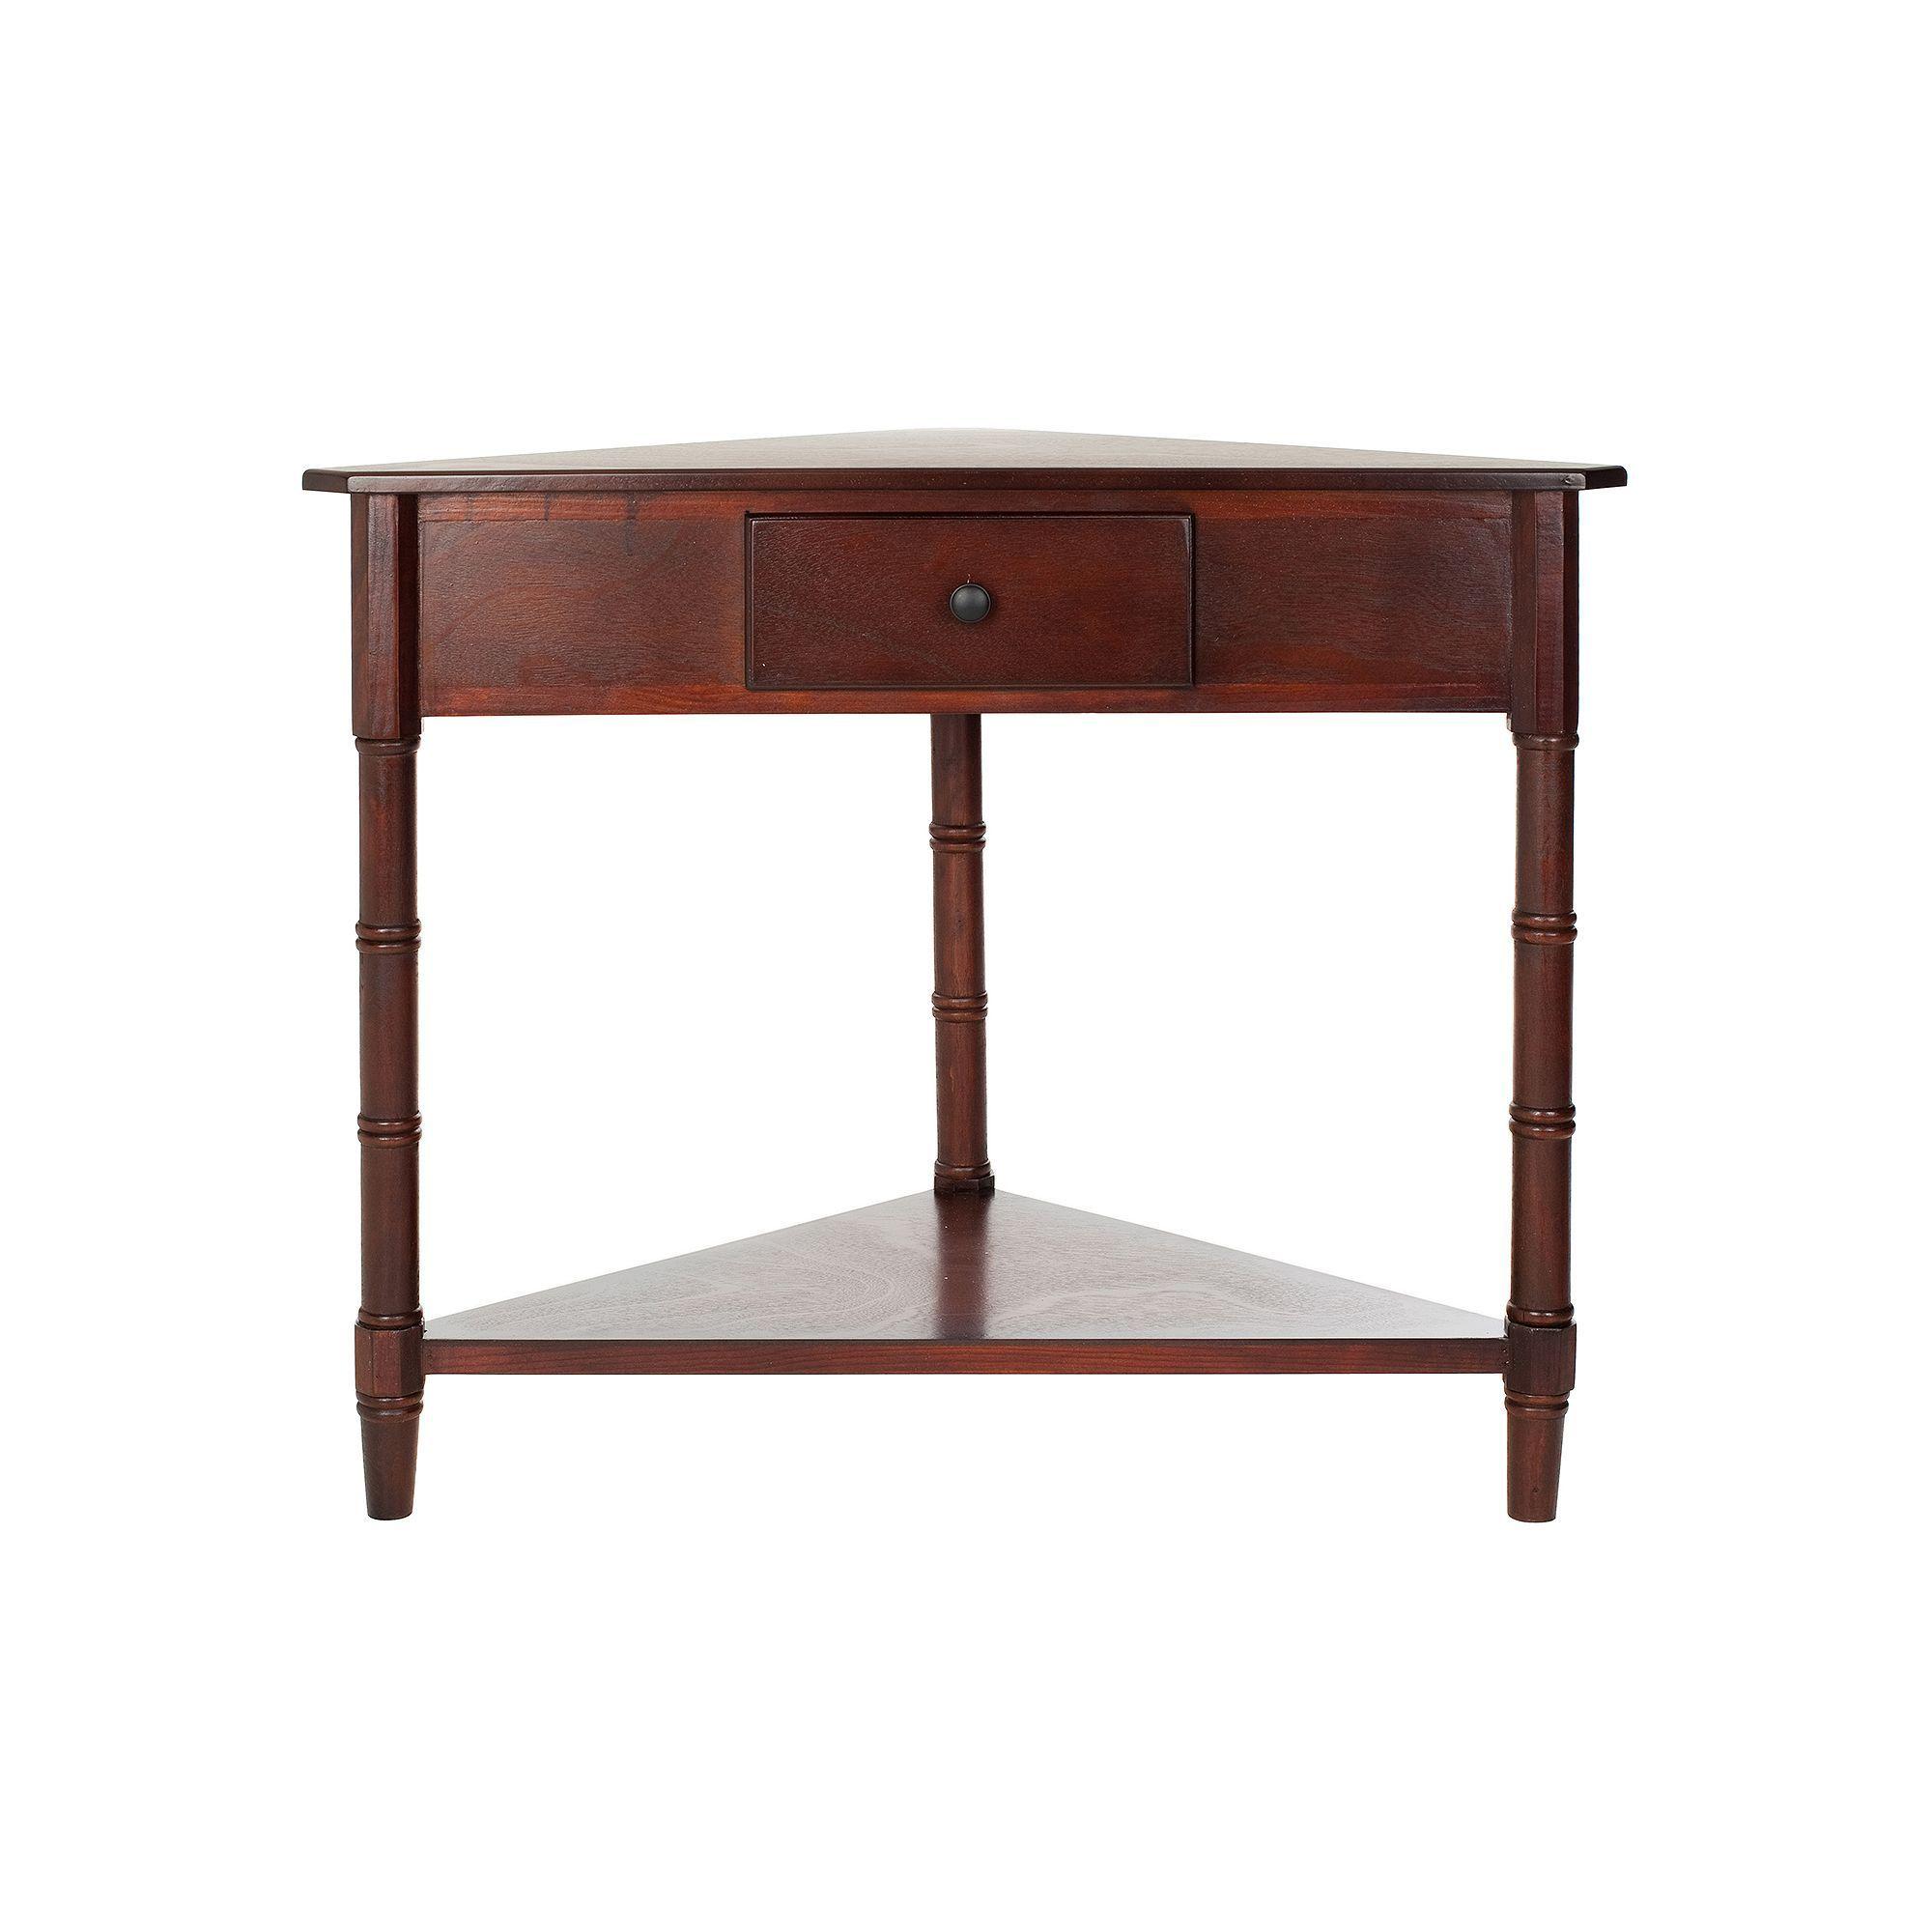 safavieh gomez corner accent table products brown ikea shoe organizer target glass top end with drawer side round pier promo code brushed gold lamp small wooden cherry wood dining